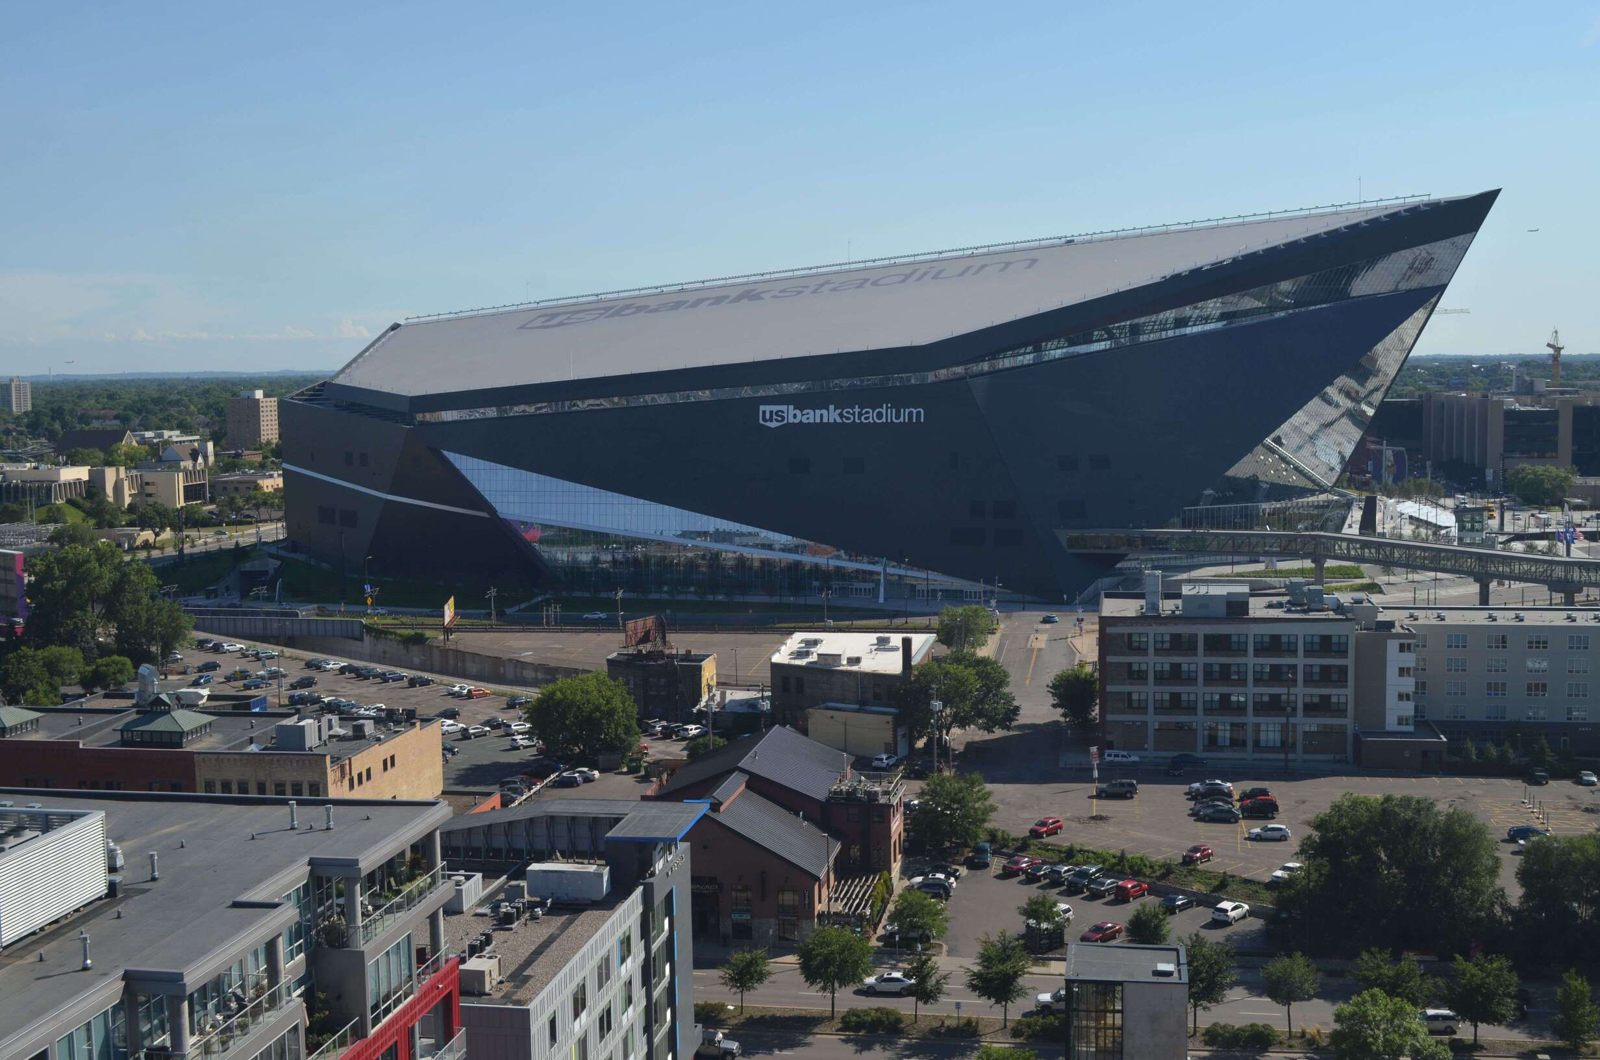 U.S Bank Stadium, Minneapolis